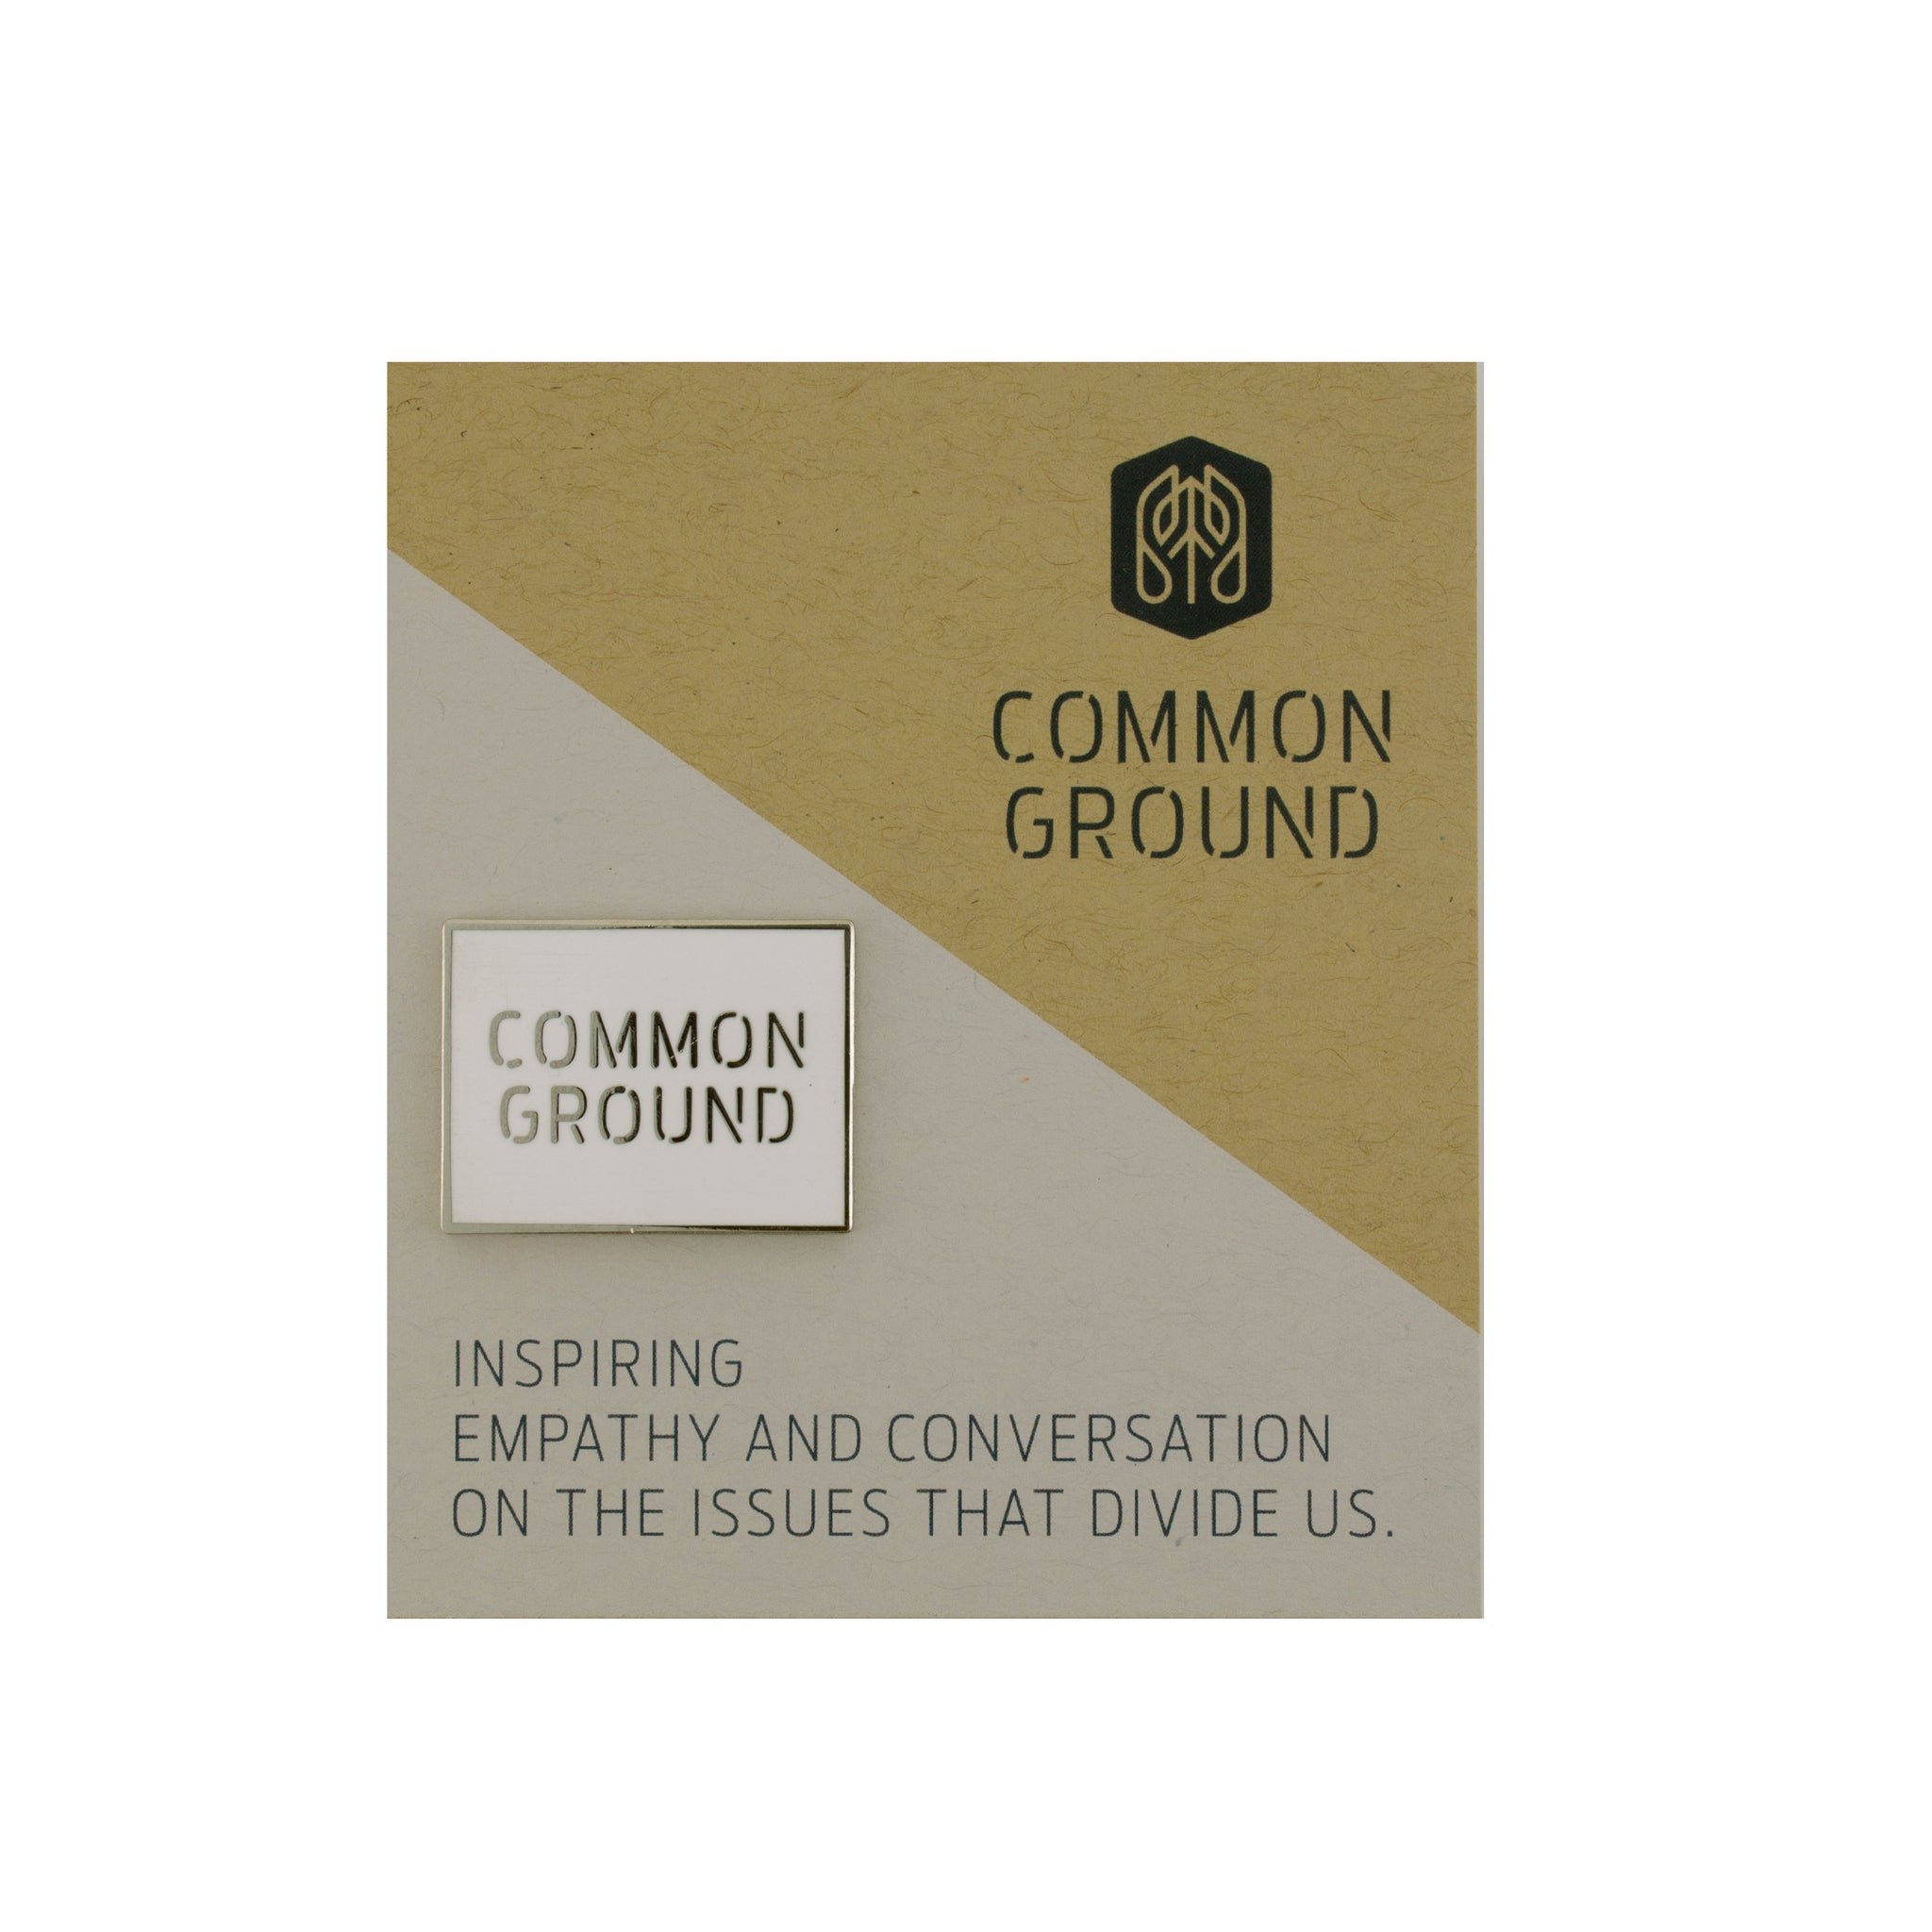 Bright_White - Common Ground Pin Card View